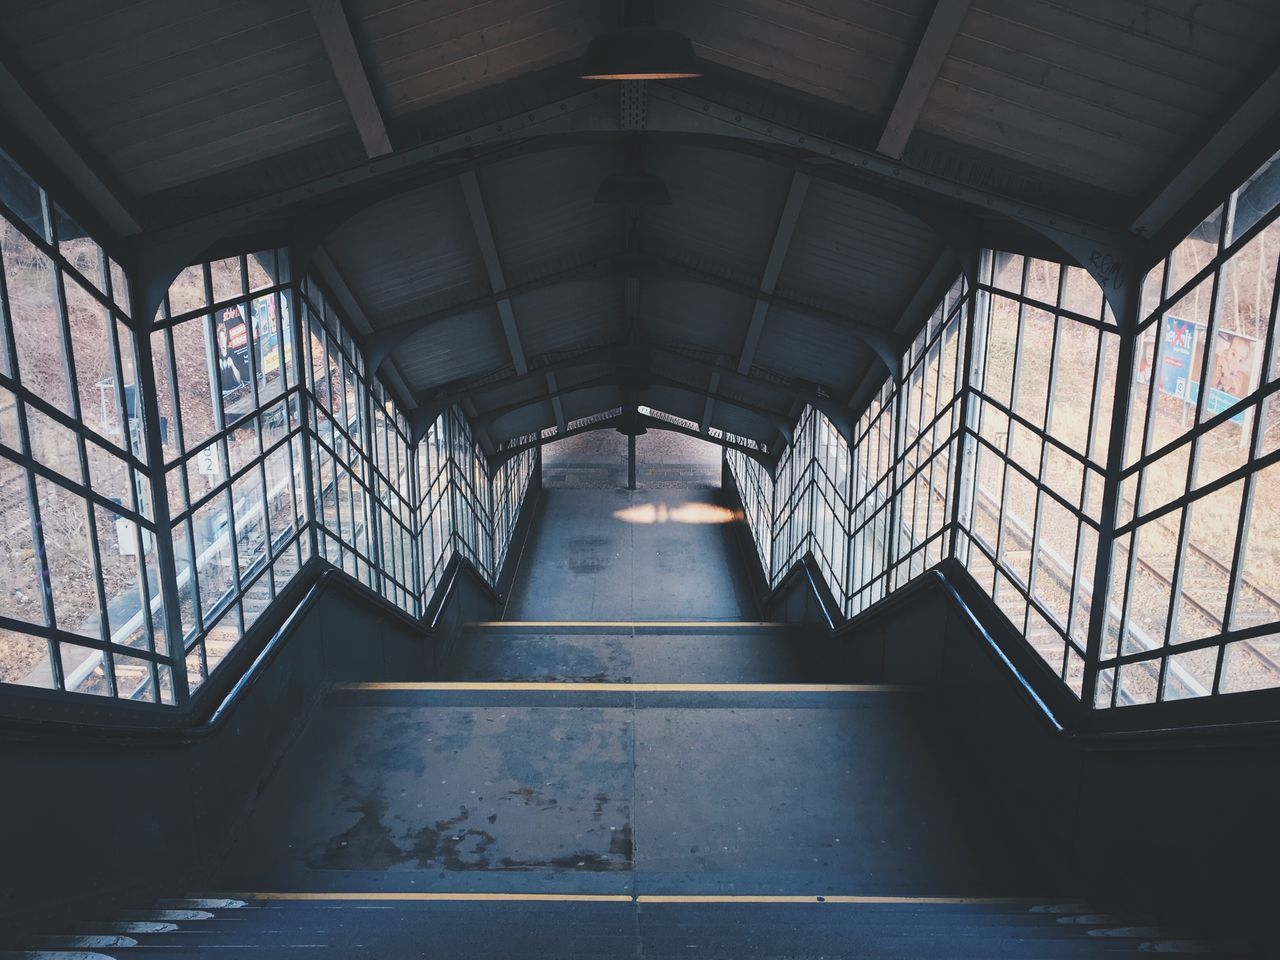 High Angle View Of Empty Staircase At Railroad Station